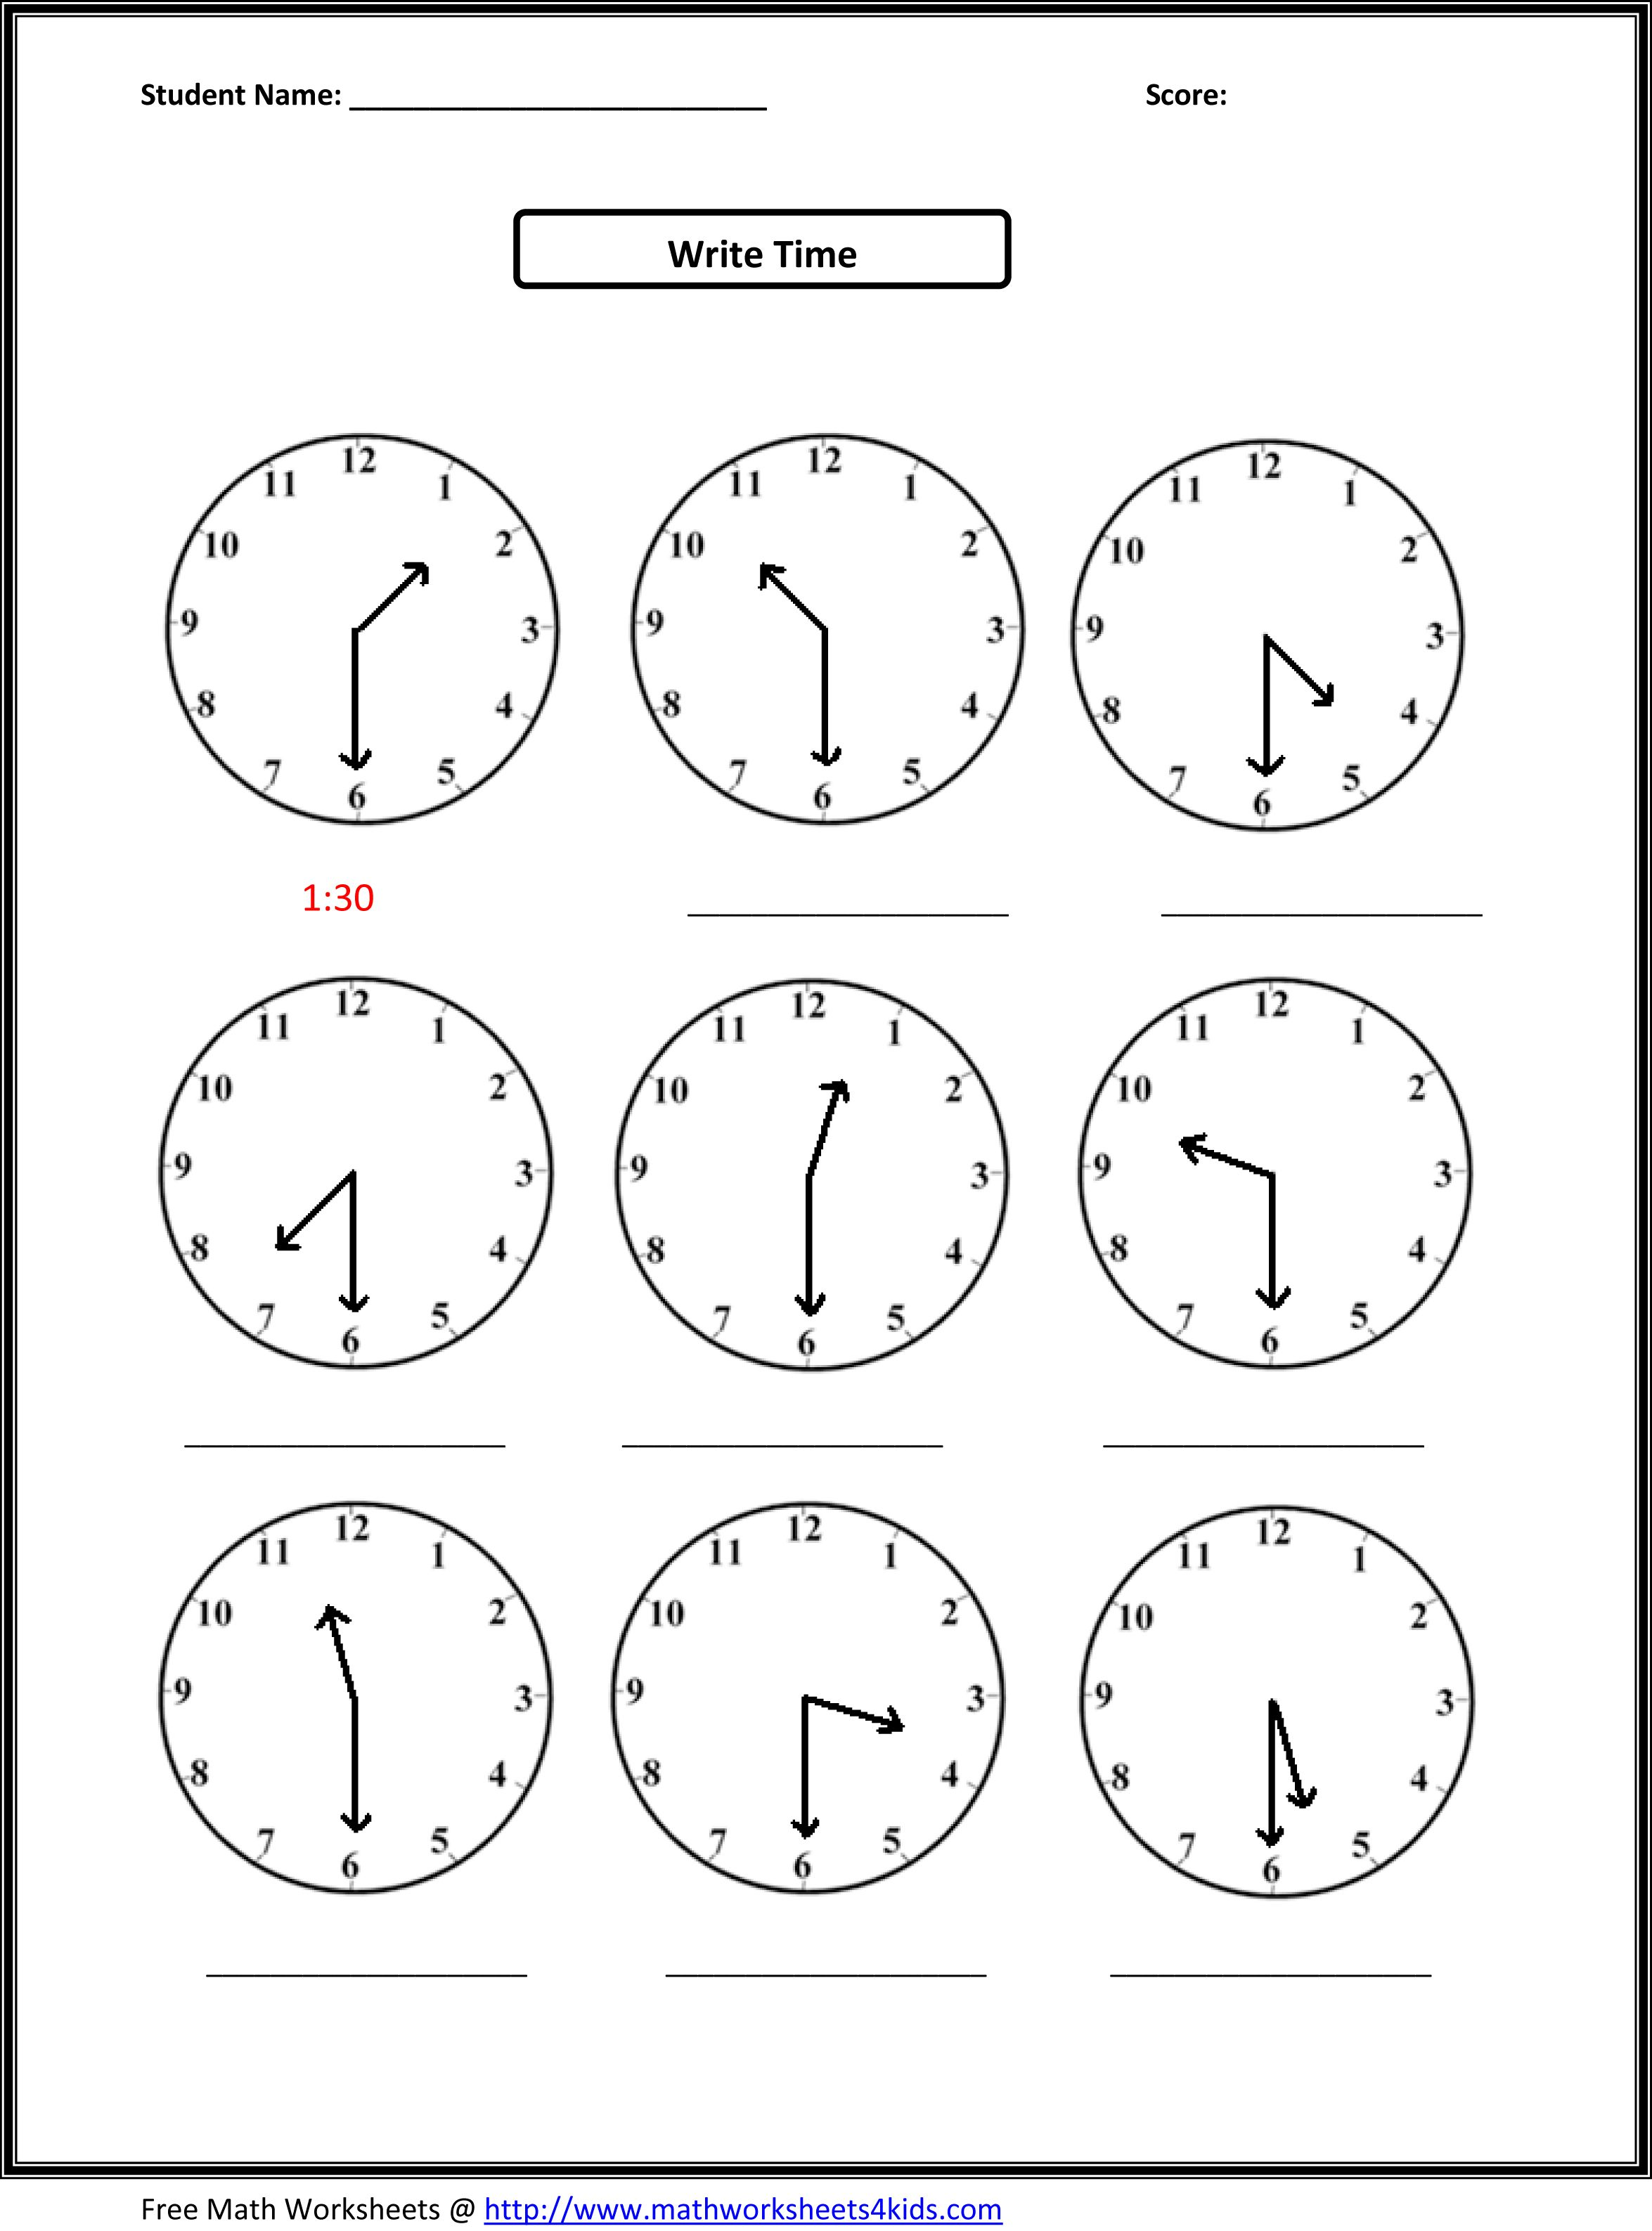 Weirdmailus  Unusual Worksheet On Time For Grade   Reocurent With Marvelous Free Printable Telling Time Worksheets Nd Grade  Reocurent With Agreeable Grade  Money Worksheets Also Conjunction And But Or Worksheets In Addition Causal Connectives Worksheet And Adjectives Printable Worksheets As Well As Uppercase Cursive Alphabet Worksheet Additionally English Year  Worksheets From Reocurentcom With Weirdmailus  Marvelous Worksheet On Time For Grade   Reocurent With Agreeable Free Printable Telling Time Worksheets Nd Grade  Reocurent And Unusual Grade  Money Worksheets Also Conjunction And But Or Worksheets In Addition Causal Connectives Worksheet From Reocurentcom